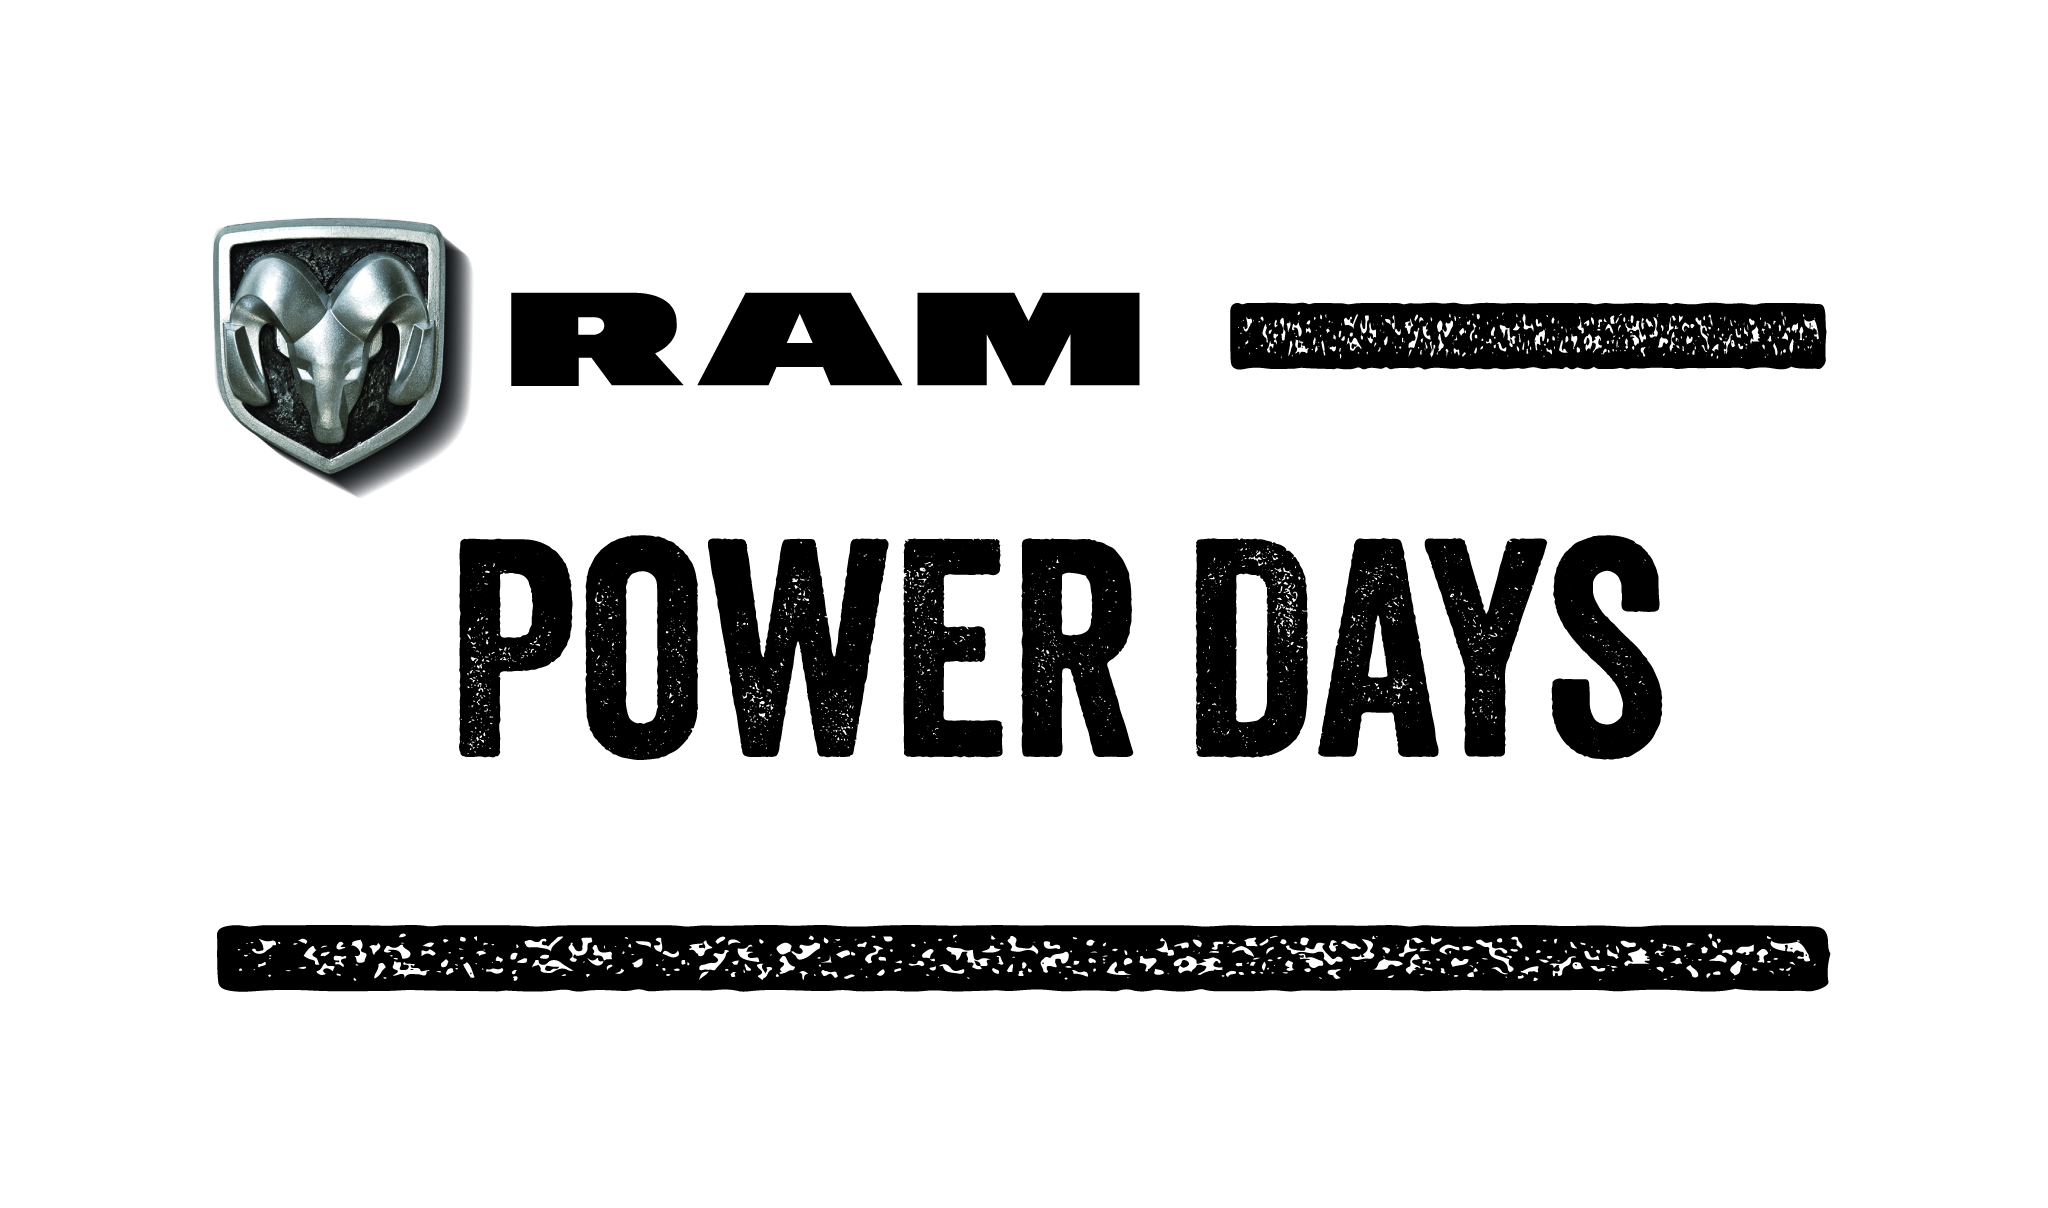 Ram Power Days in Rockford, IL